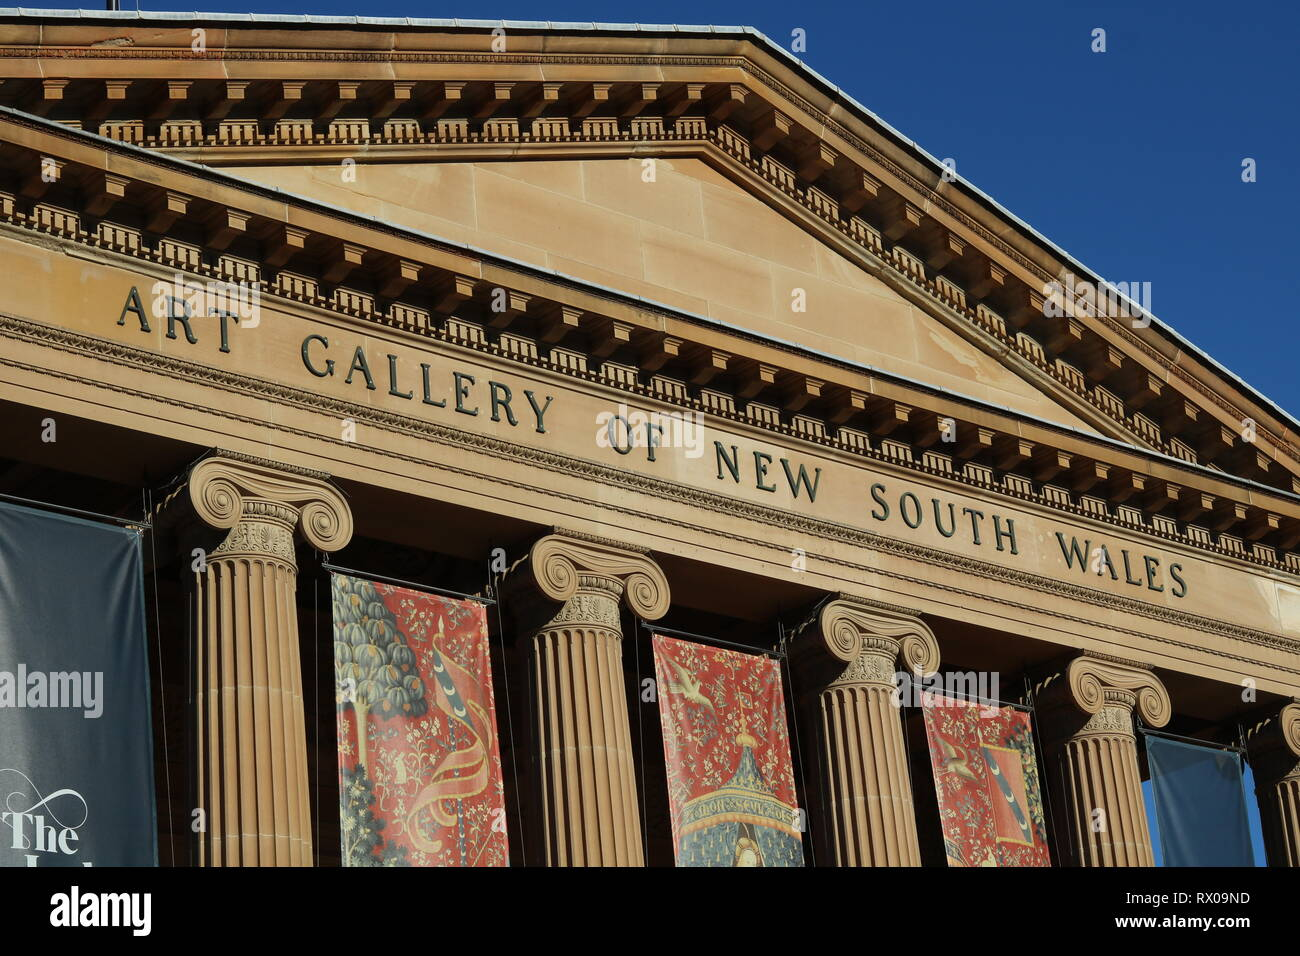 Art Gallery of New South Wales in Sydney Australia - Facade - Stock Image